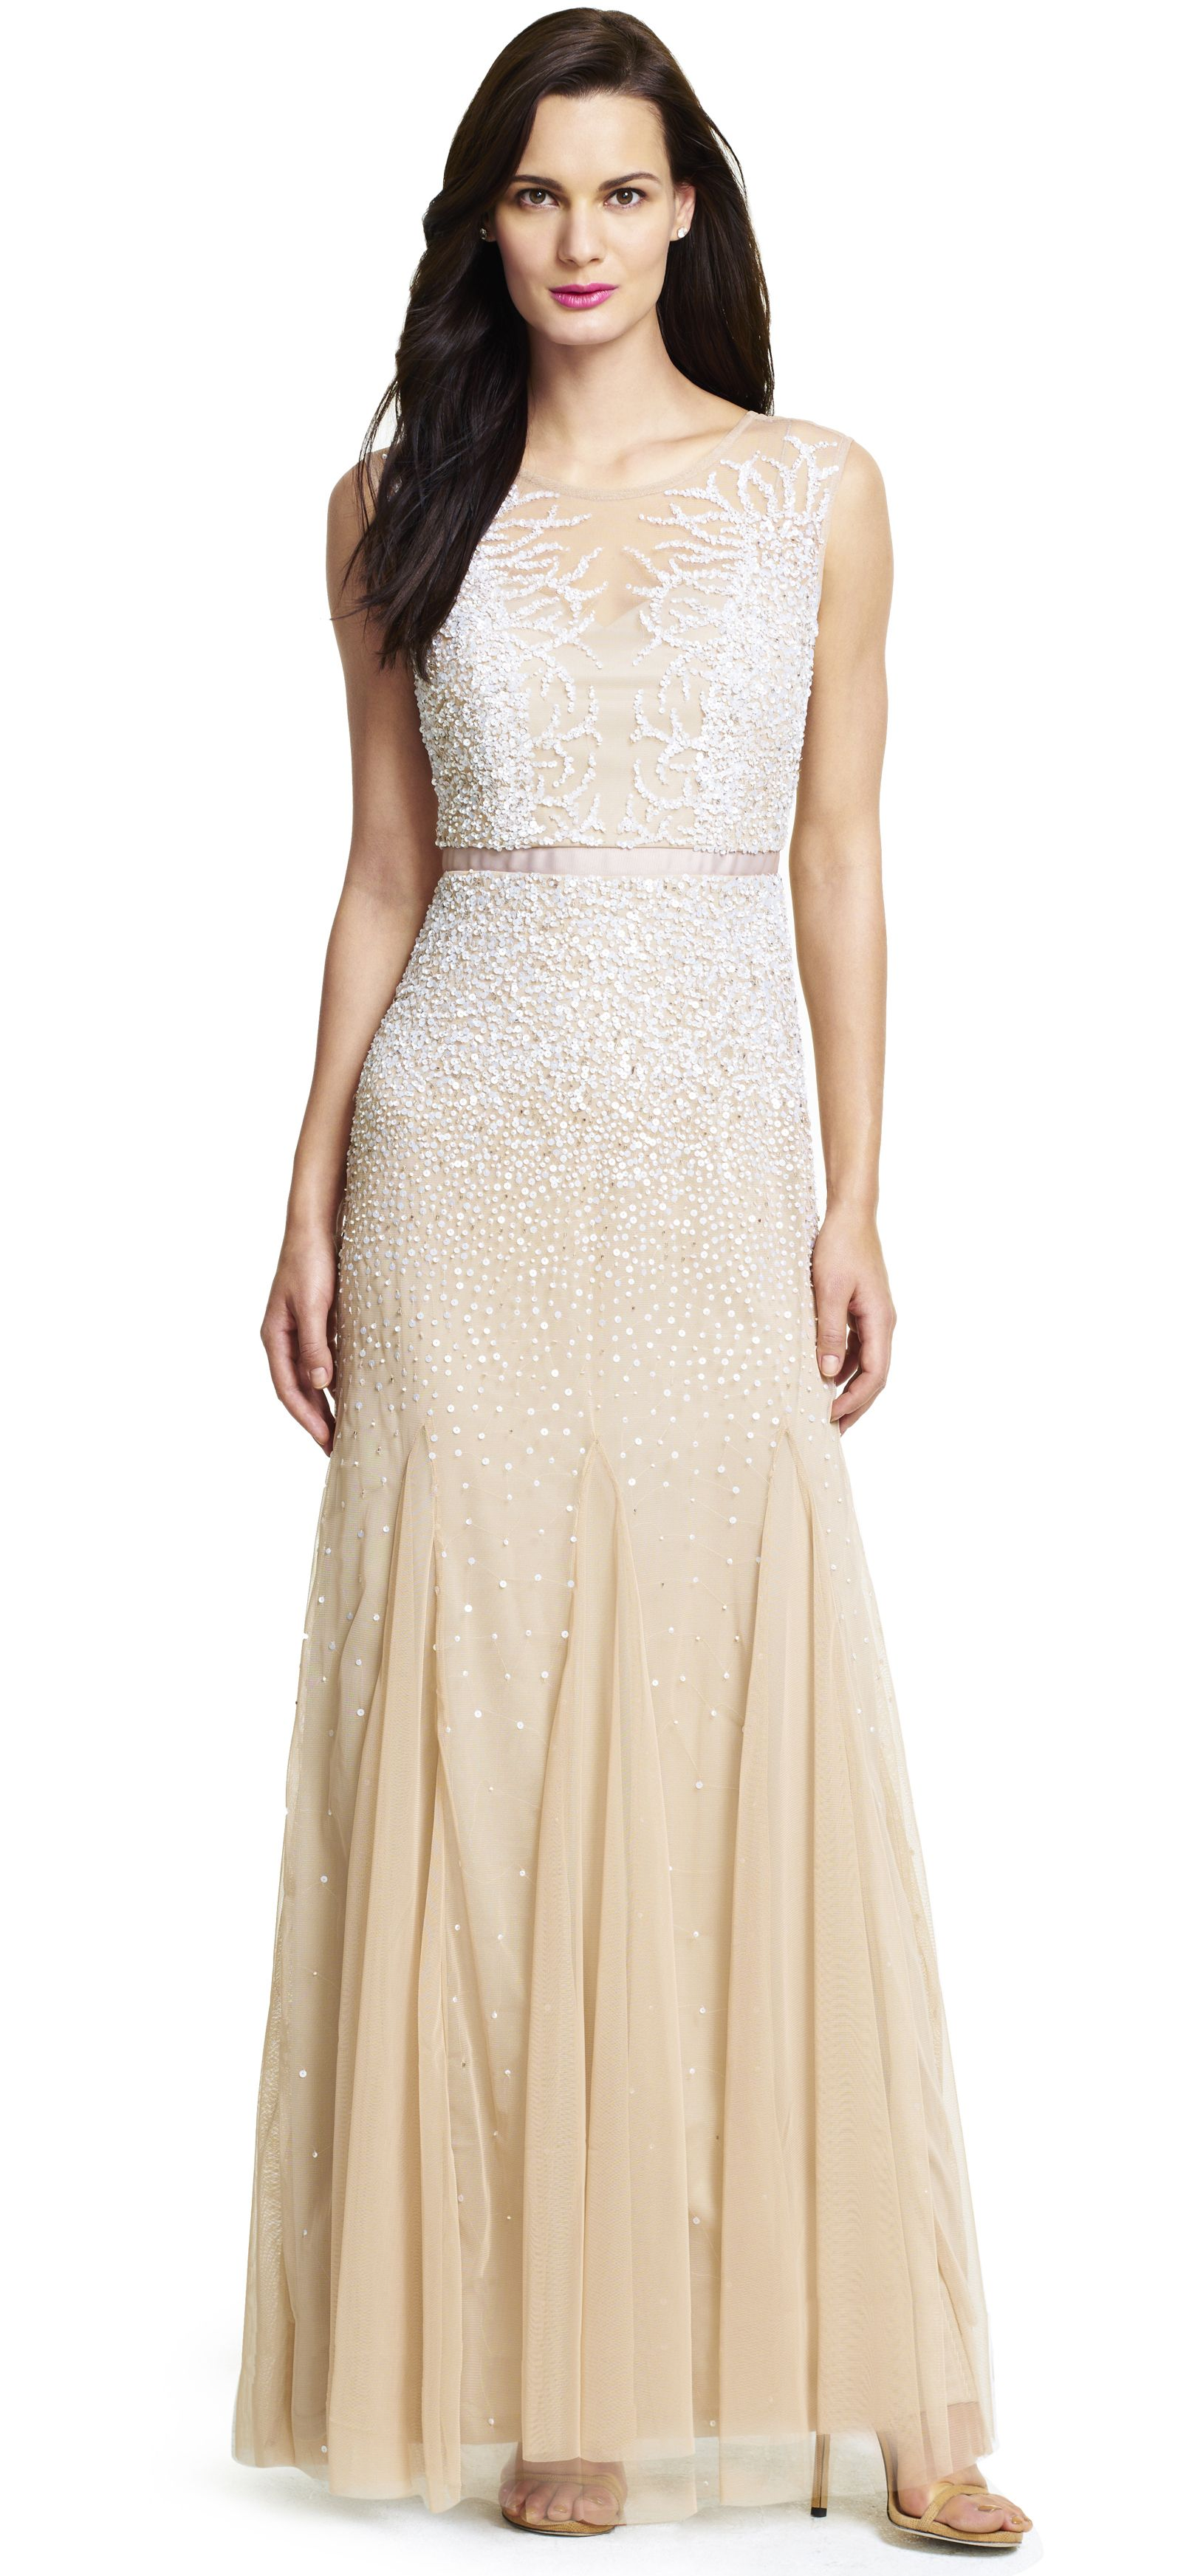 From the sheer neckline to the delicately beaded bodice and V-neck ...